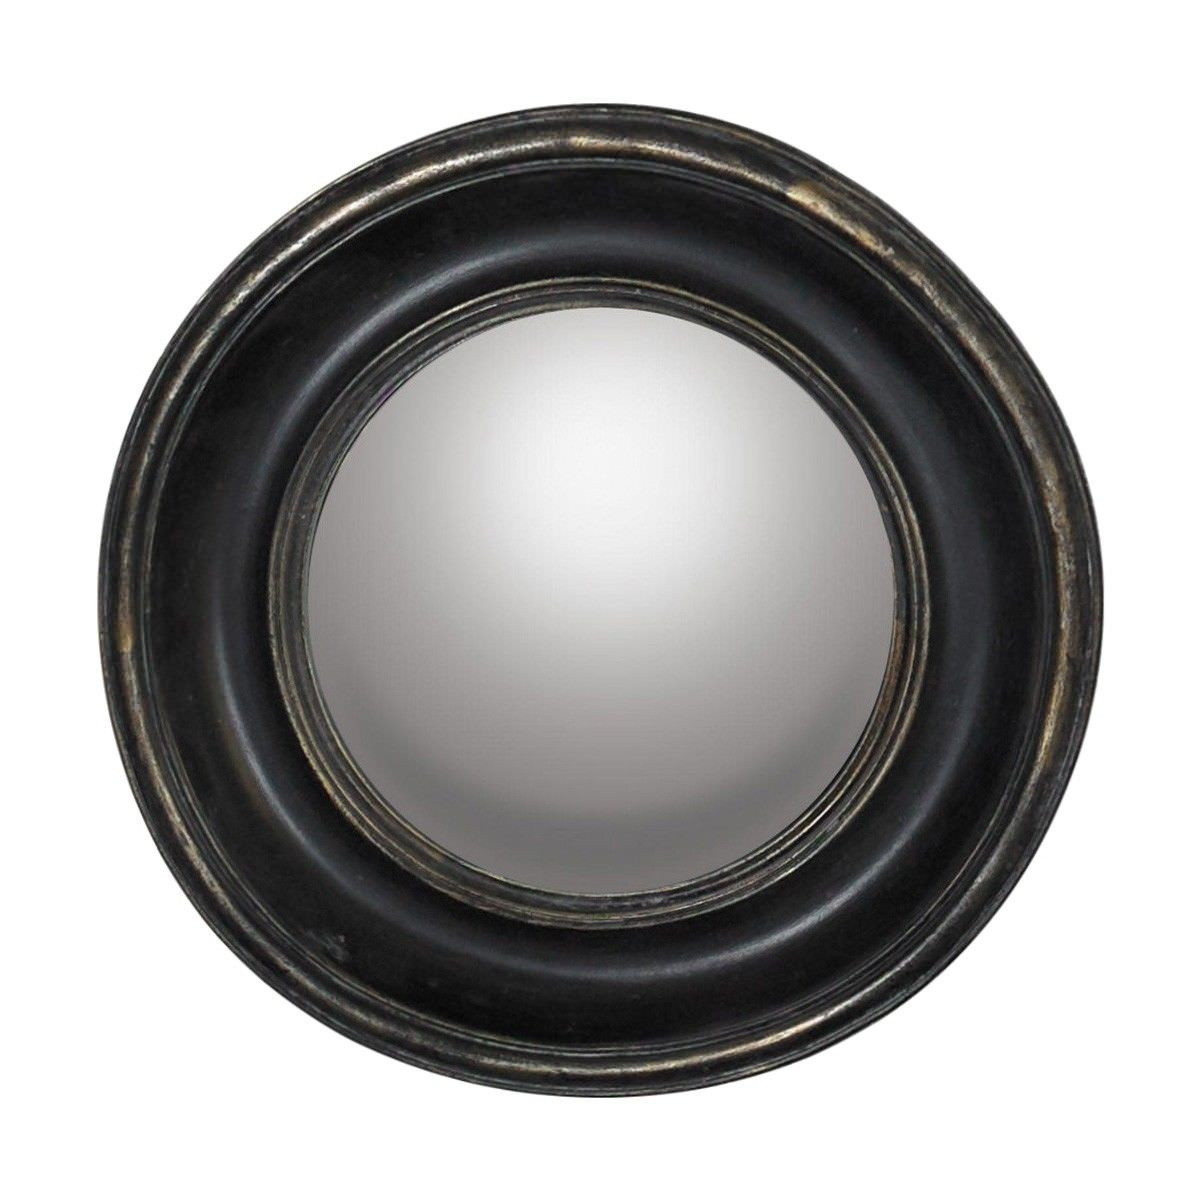 Authentic Models Classic Eye Convex Round Wall Mirror, 25.5cm